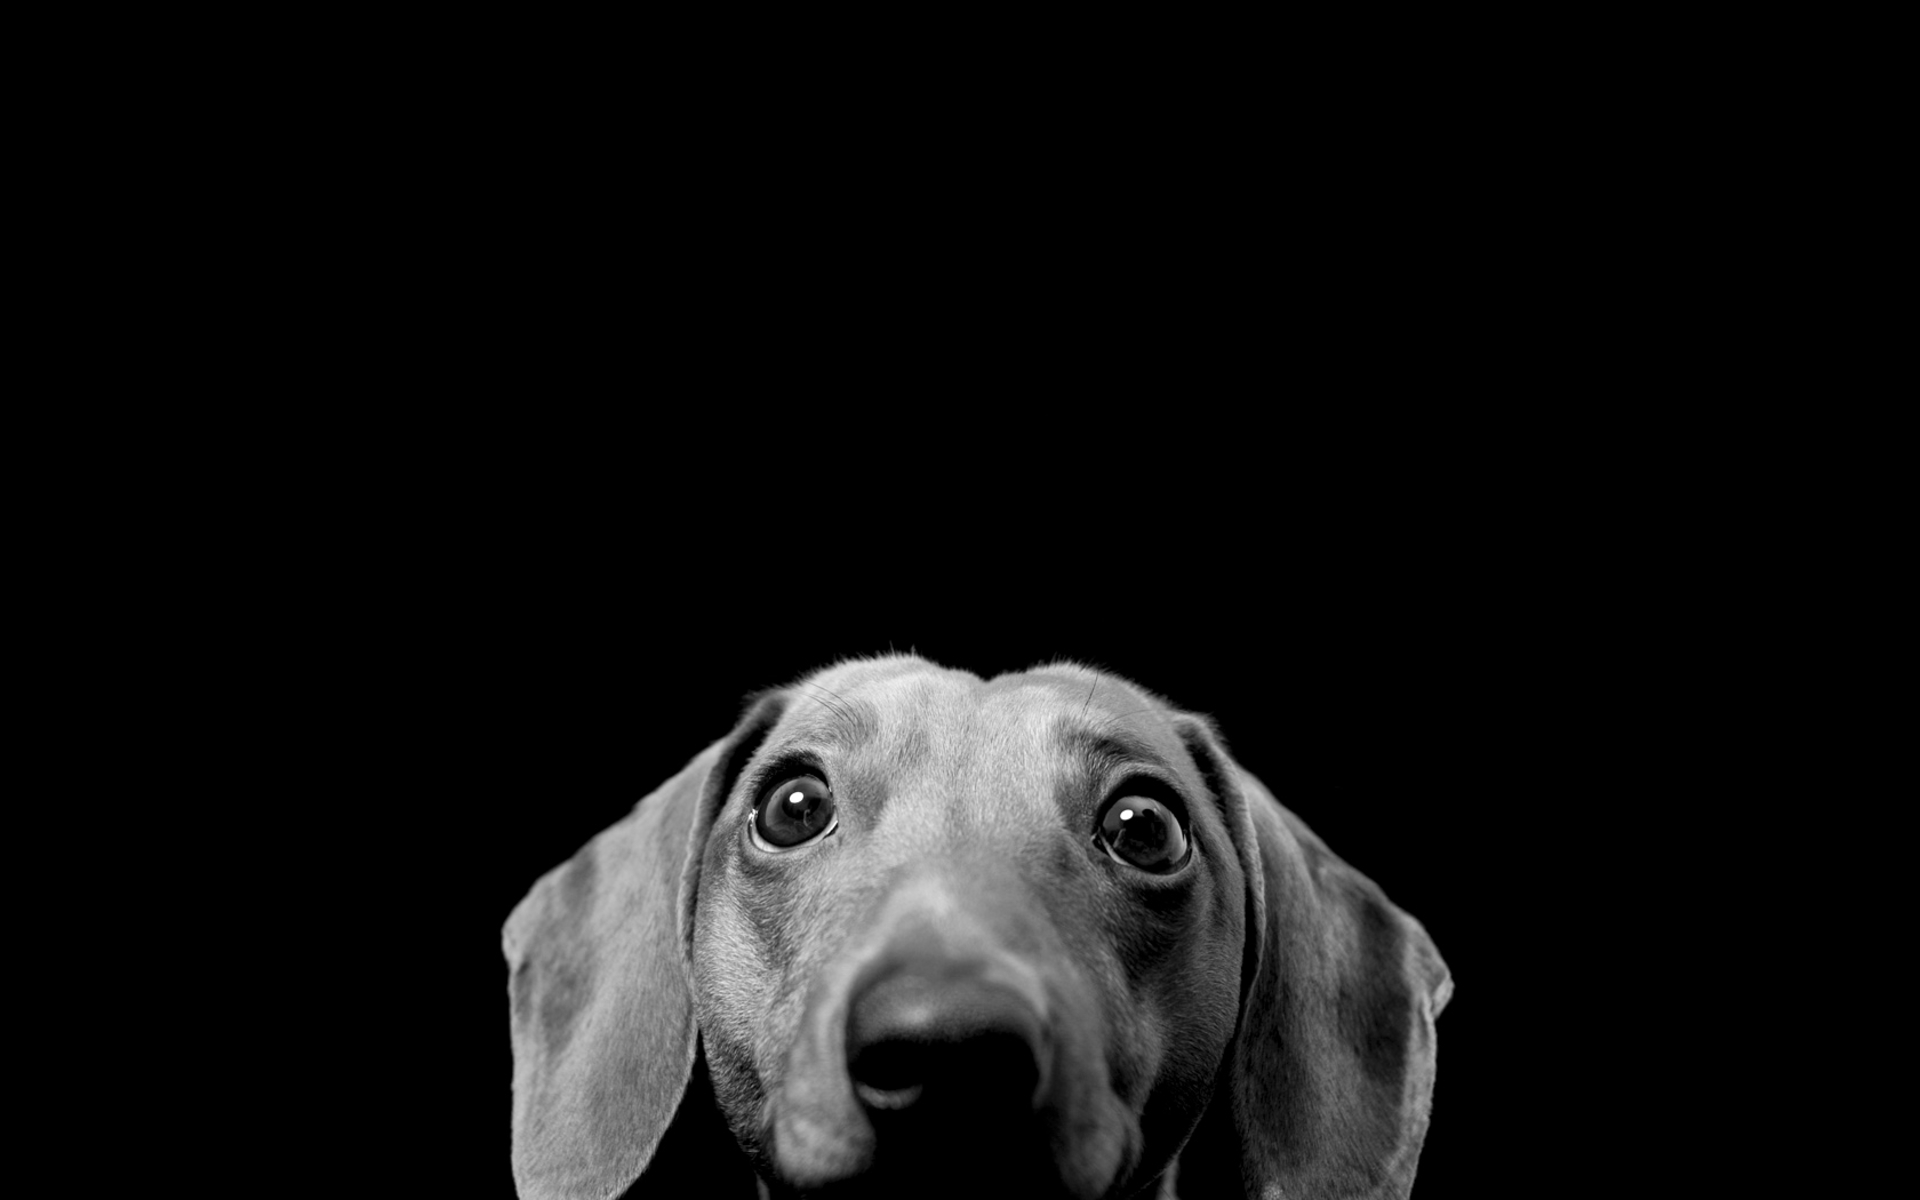 Black And White Dog Wallpapers Mobile - Scerbos com